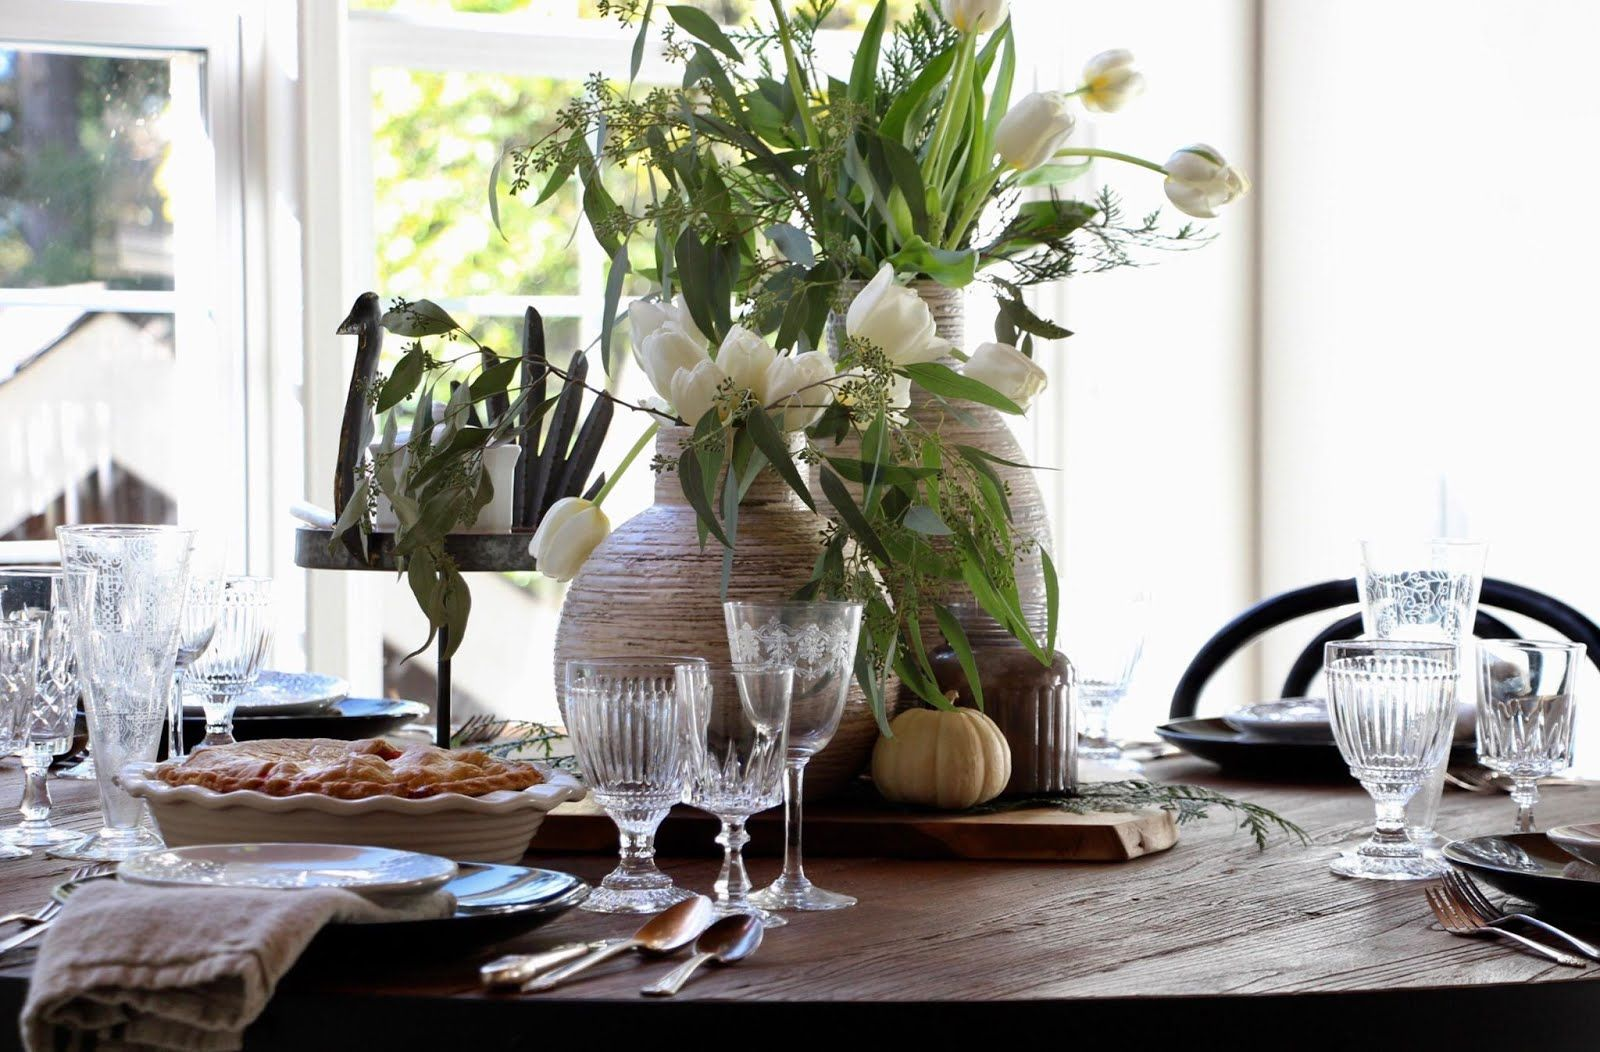 On the table- Gathered Goodness Thanksgiving table setting idea #thanksgivingtablesettings